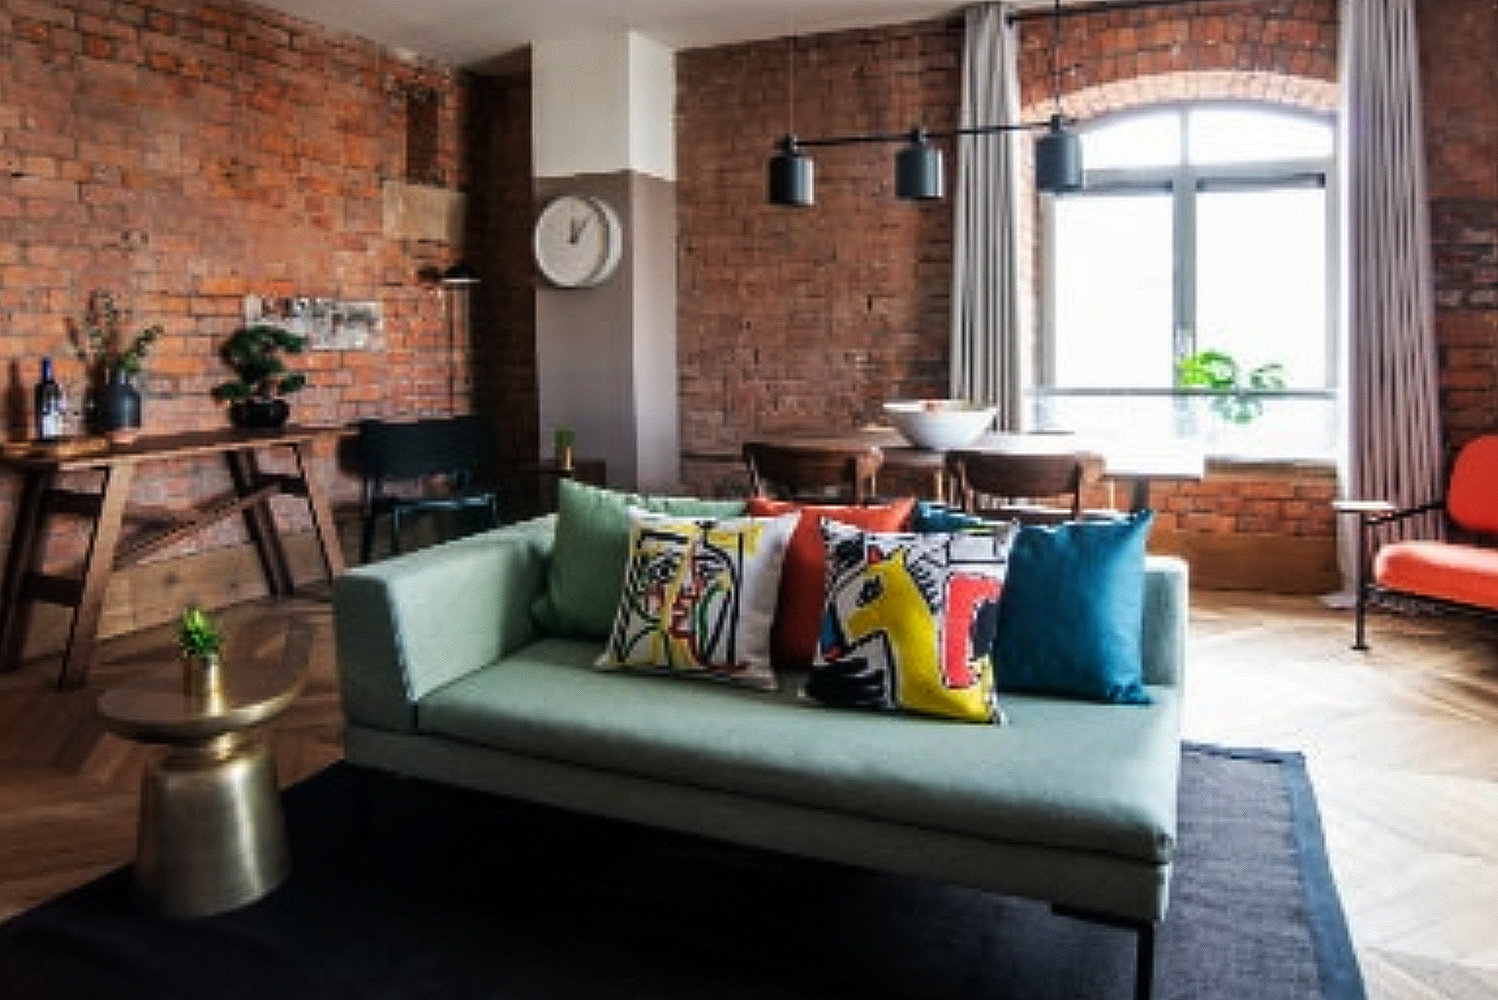 Native Manchester will open this September in a Grade II listed building that is being re-imagined by David Archer of Archer Humphreys Architects.